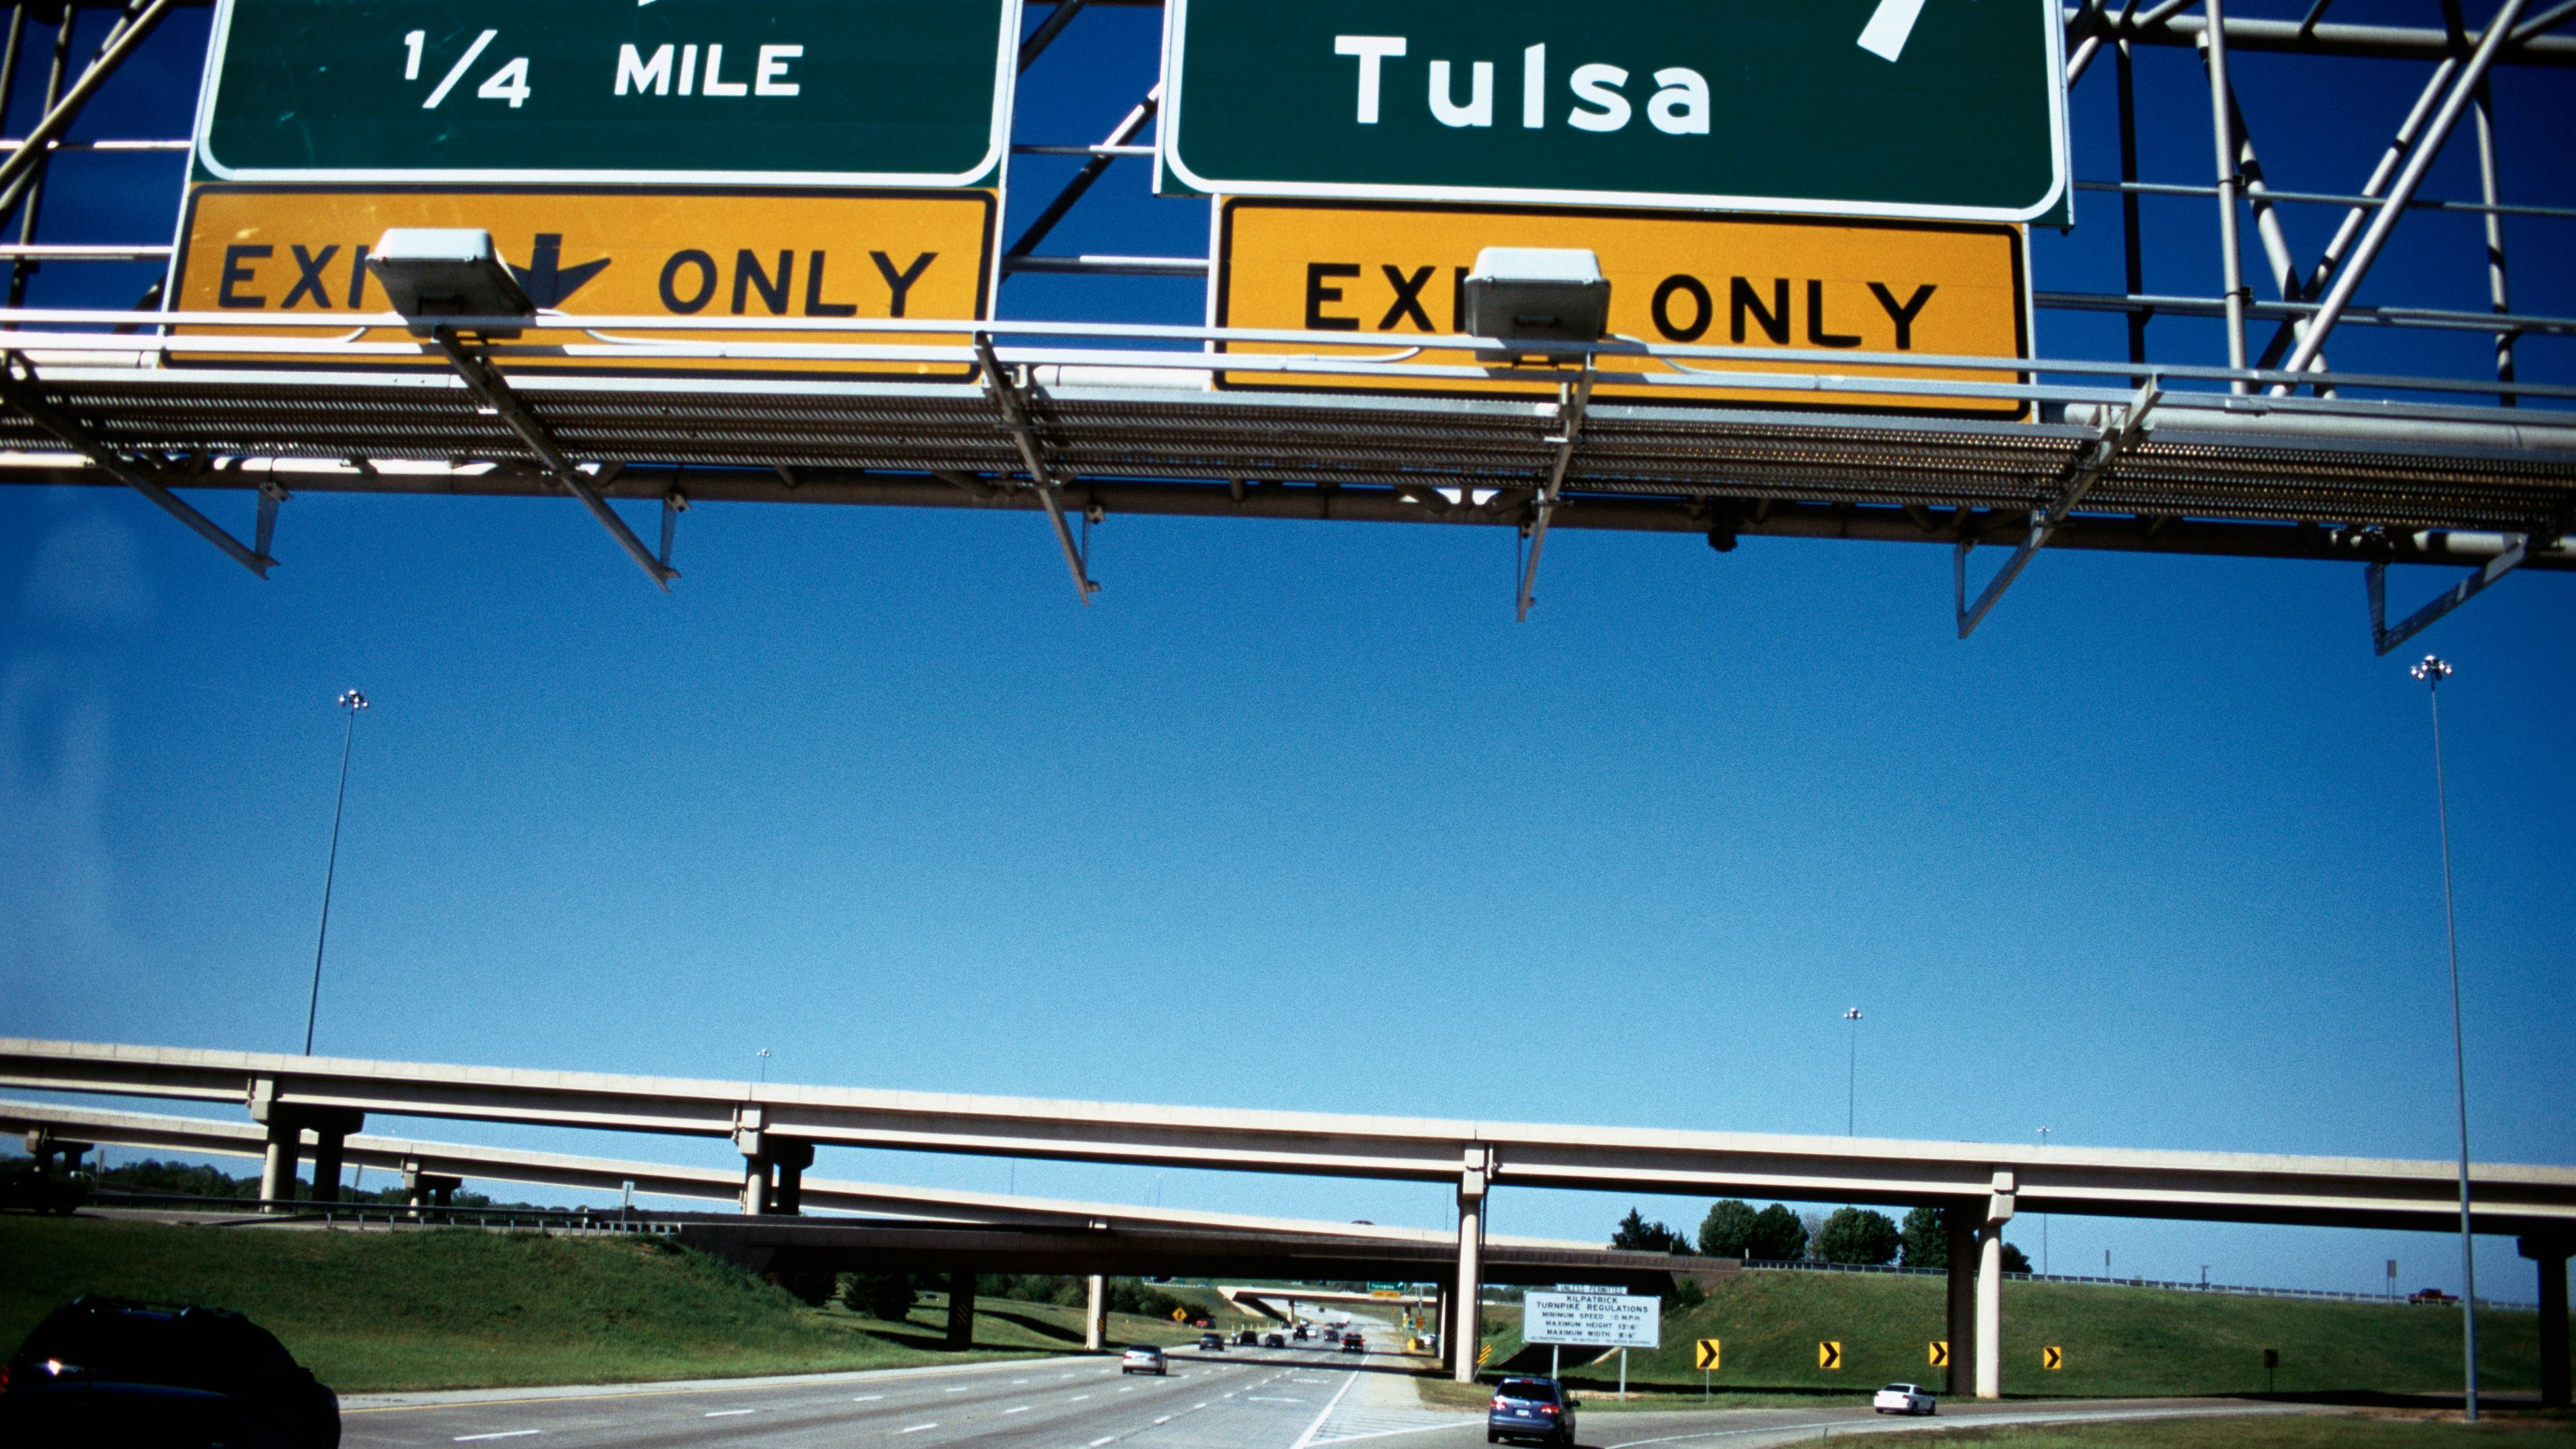 Oklahoma City Area Highways and Interstates